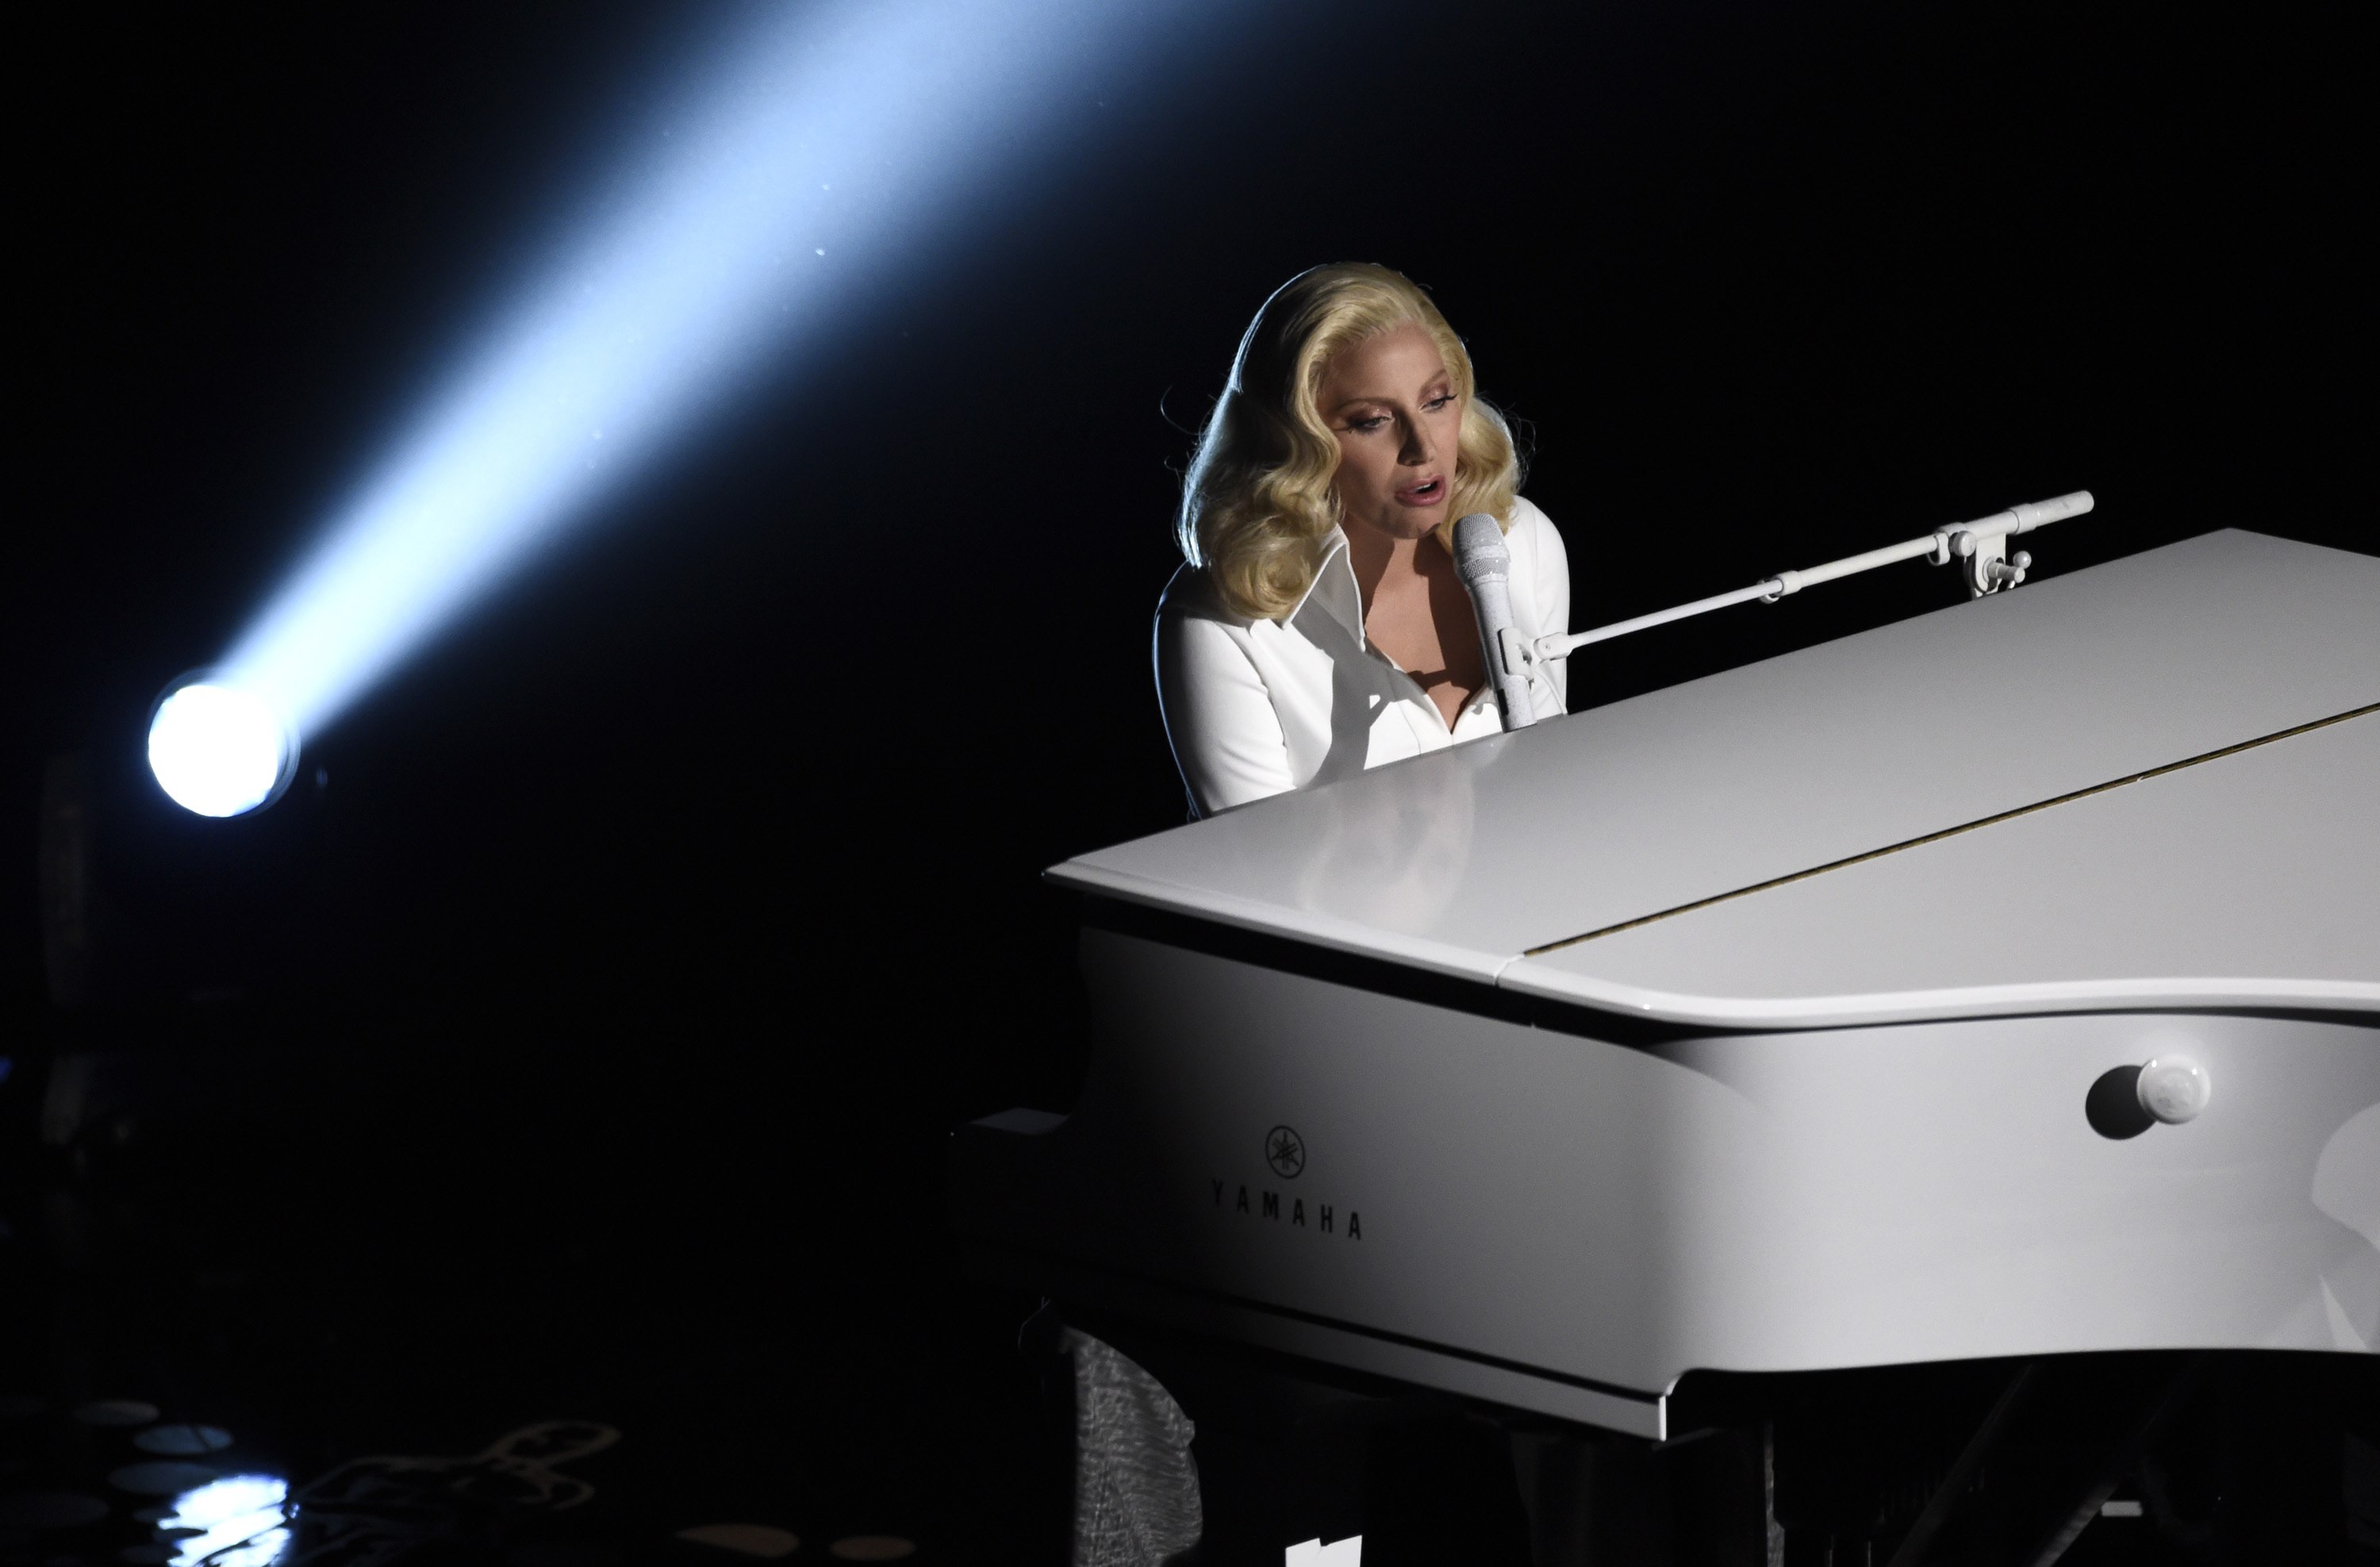 Lady Gaga encouraged women to speak up about sexual assault